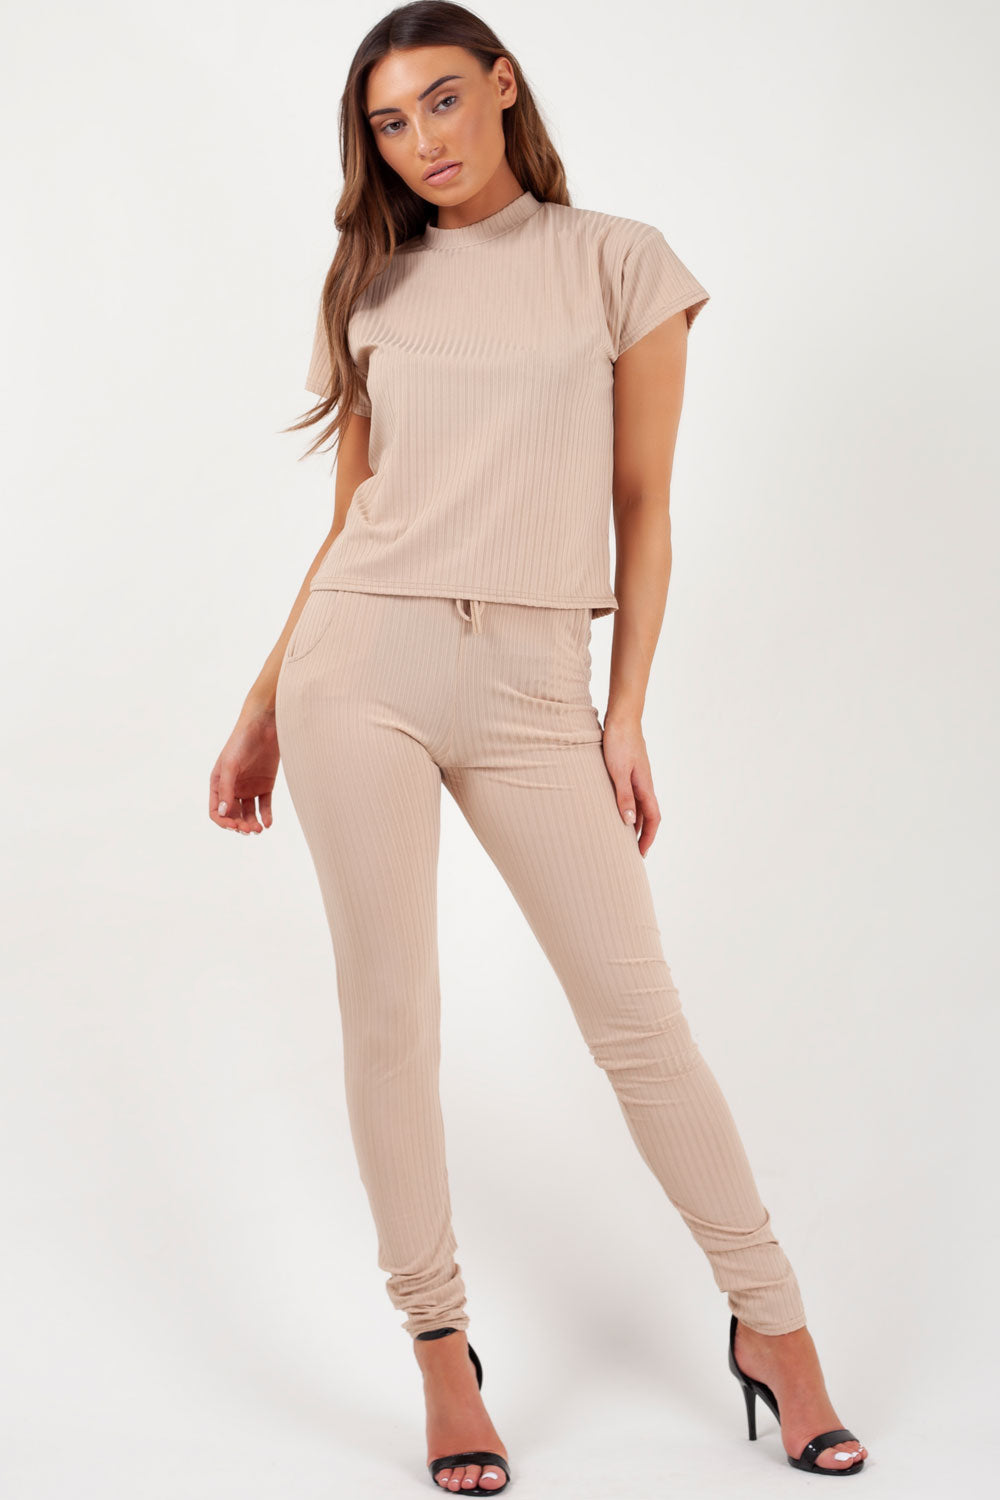 Ribbed Boxy Loungewear Set Camel Styledup Co Uk